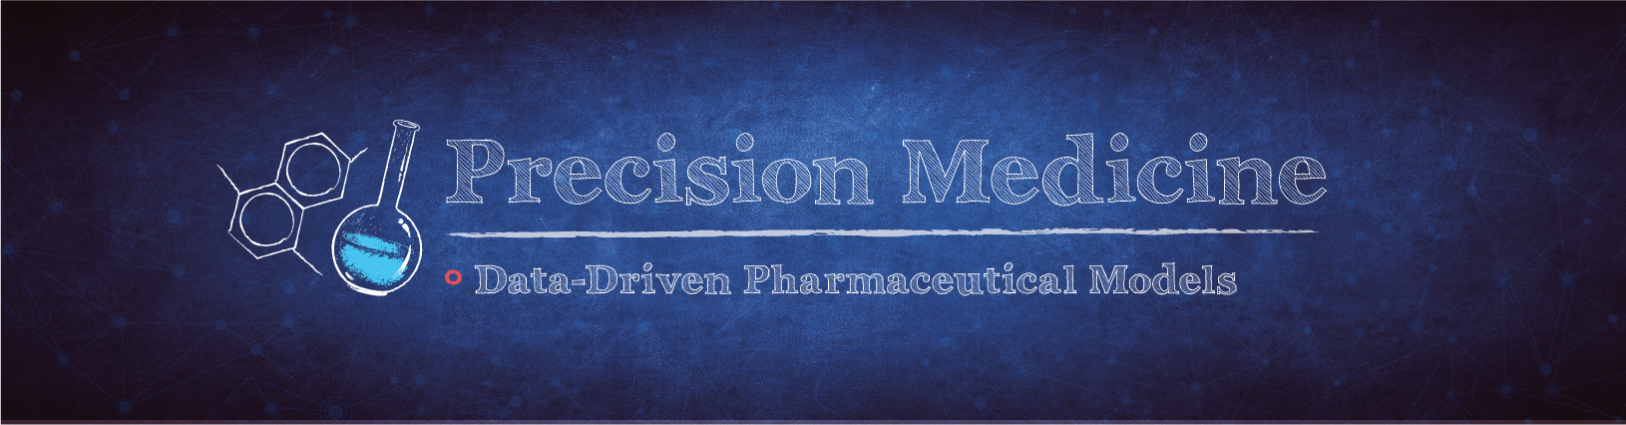 blue background with Precision Medicine: Data-Driven Pharmaceutical Models in text